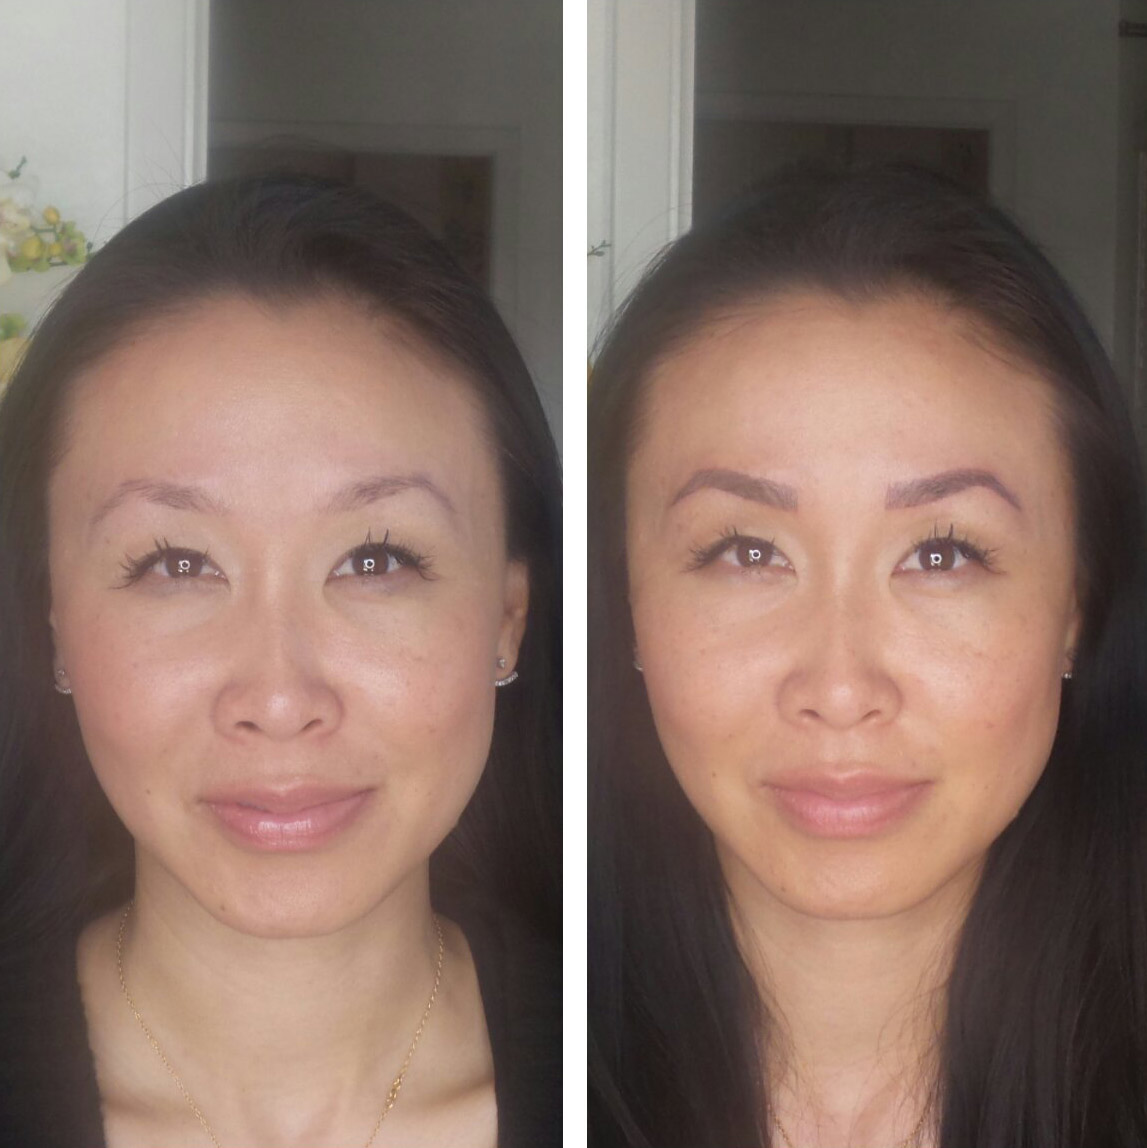 3D Embroidery / Microblading eyebrows - before and after, lasts for a year and a half, semi permanent.